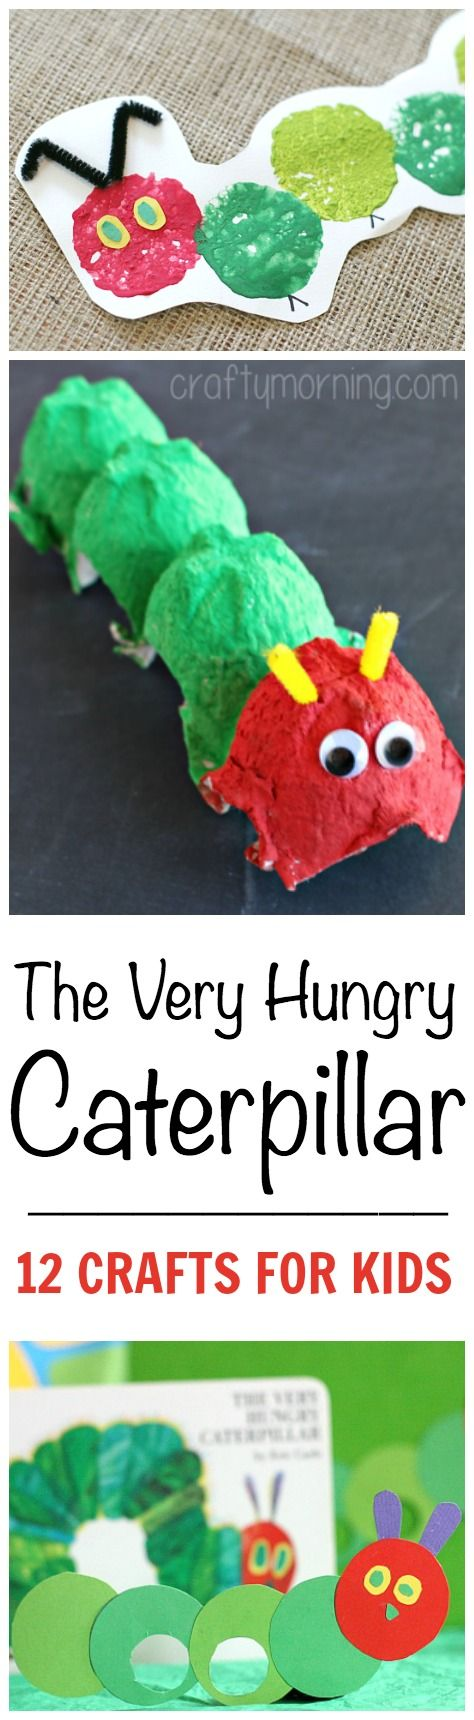 The Very Hungry Caterpillar Crafts For Kids.